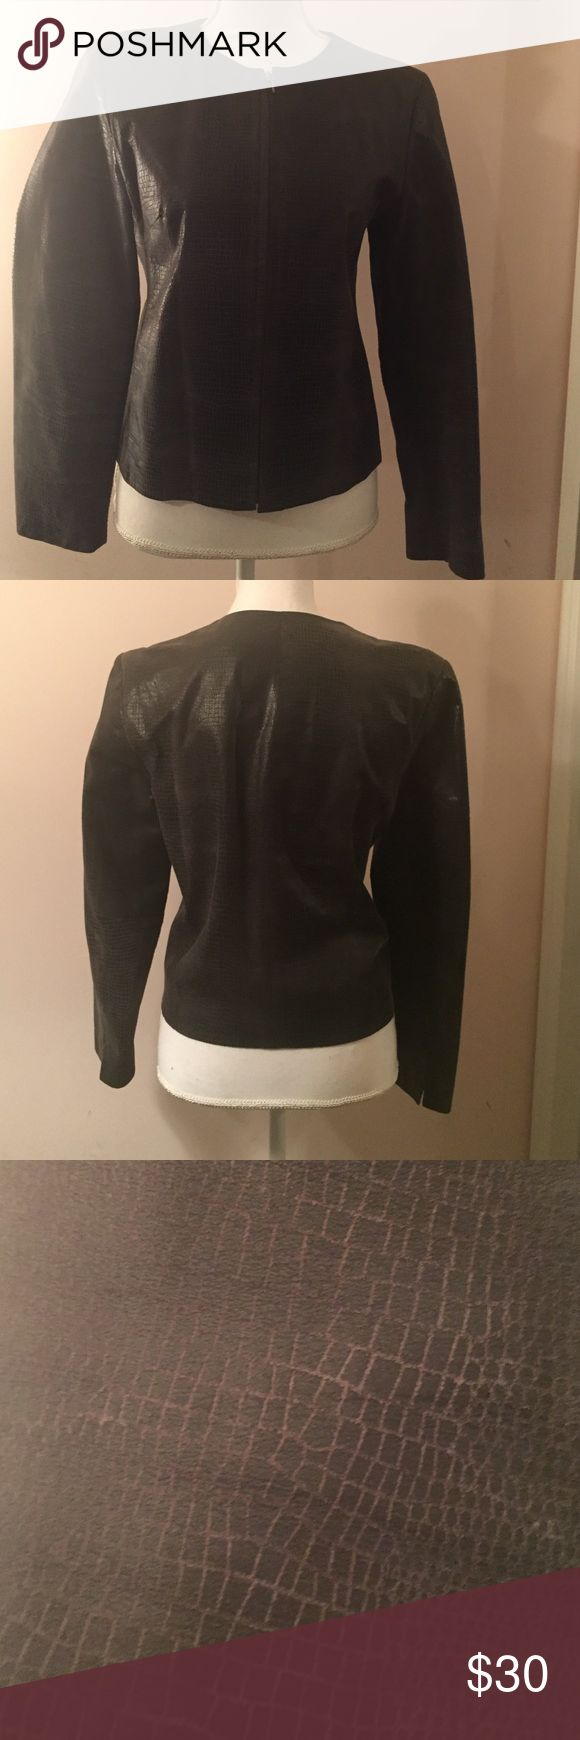 🔥Black Leather Real Alligator embossed jacket🔥 🏆🏆🏆From Lord and Taylor black short leather jacket measuring 20 inches long Lord & Taylor Jackets & Coats